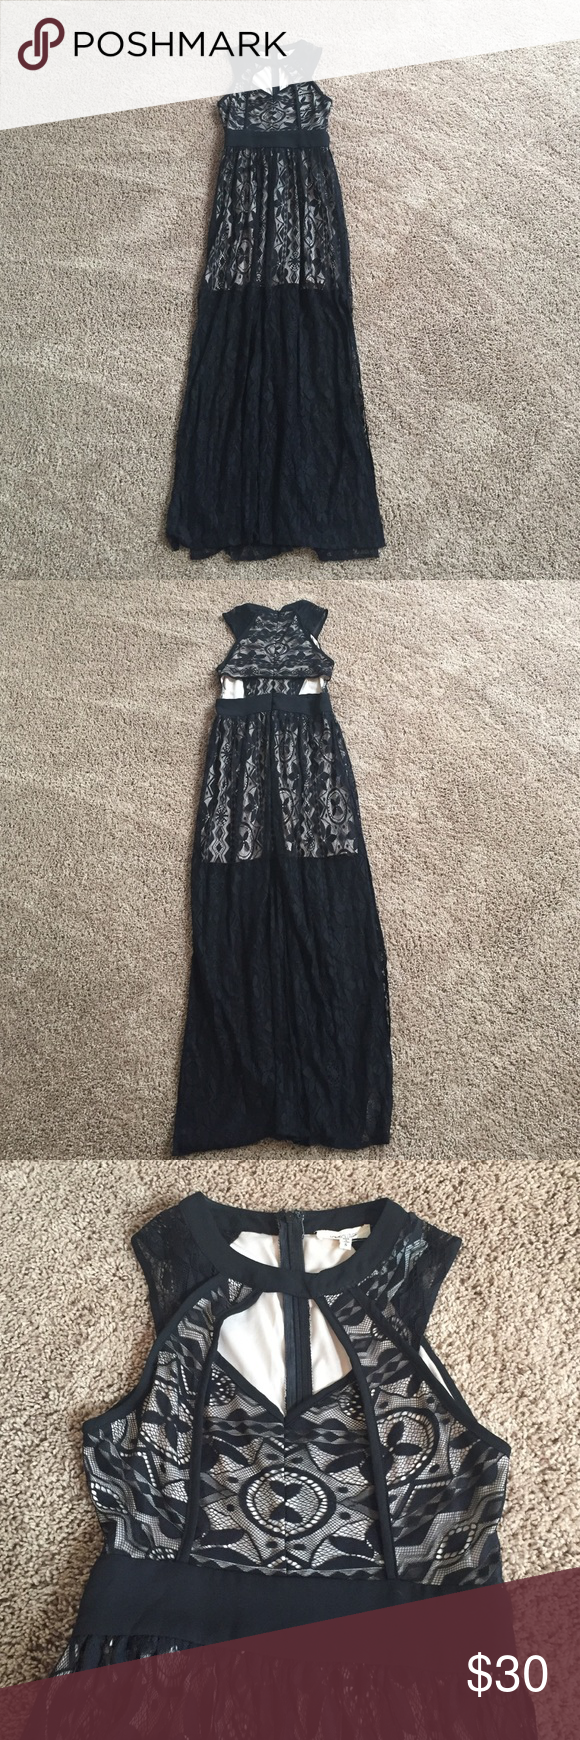 Long gown dress with black lace the beautiful long dress has black